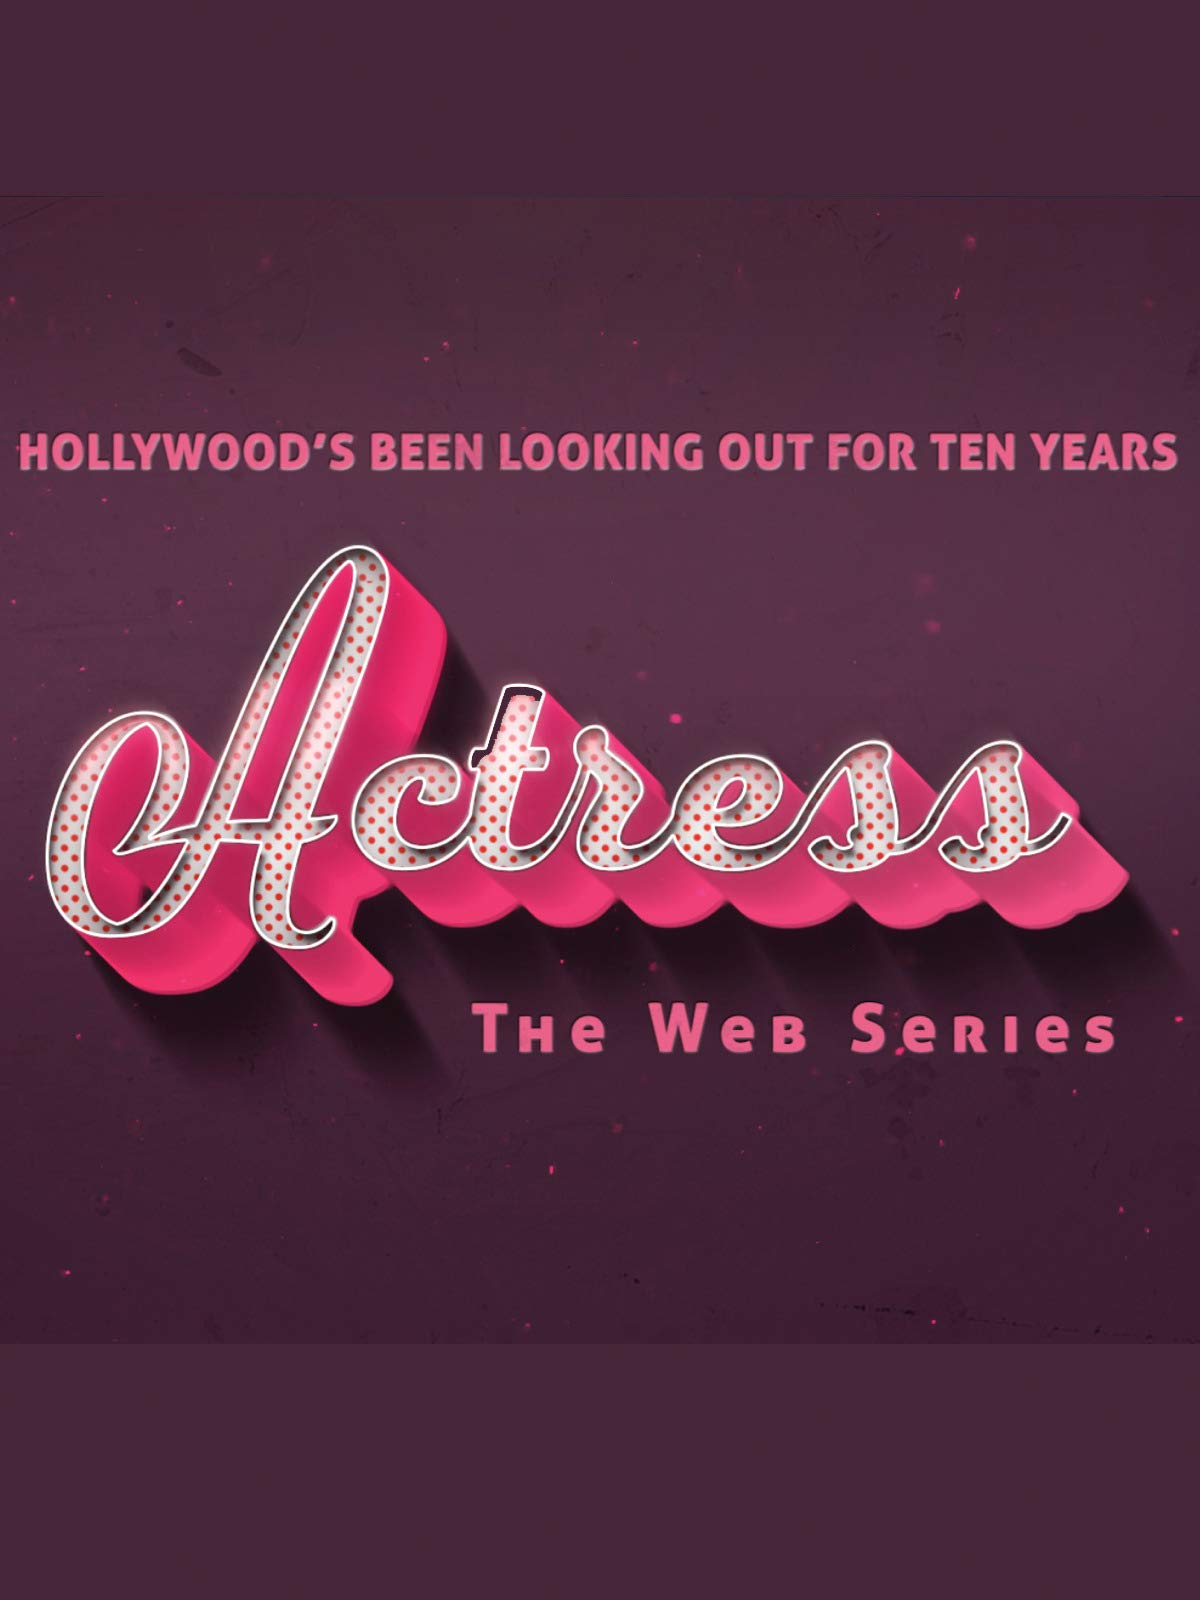 Clip: Actress: Another Word for Waitress, S1E1 Hollywood 101 (PILOT)